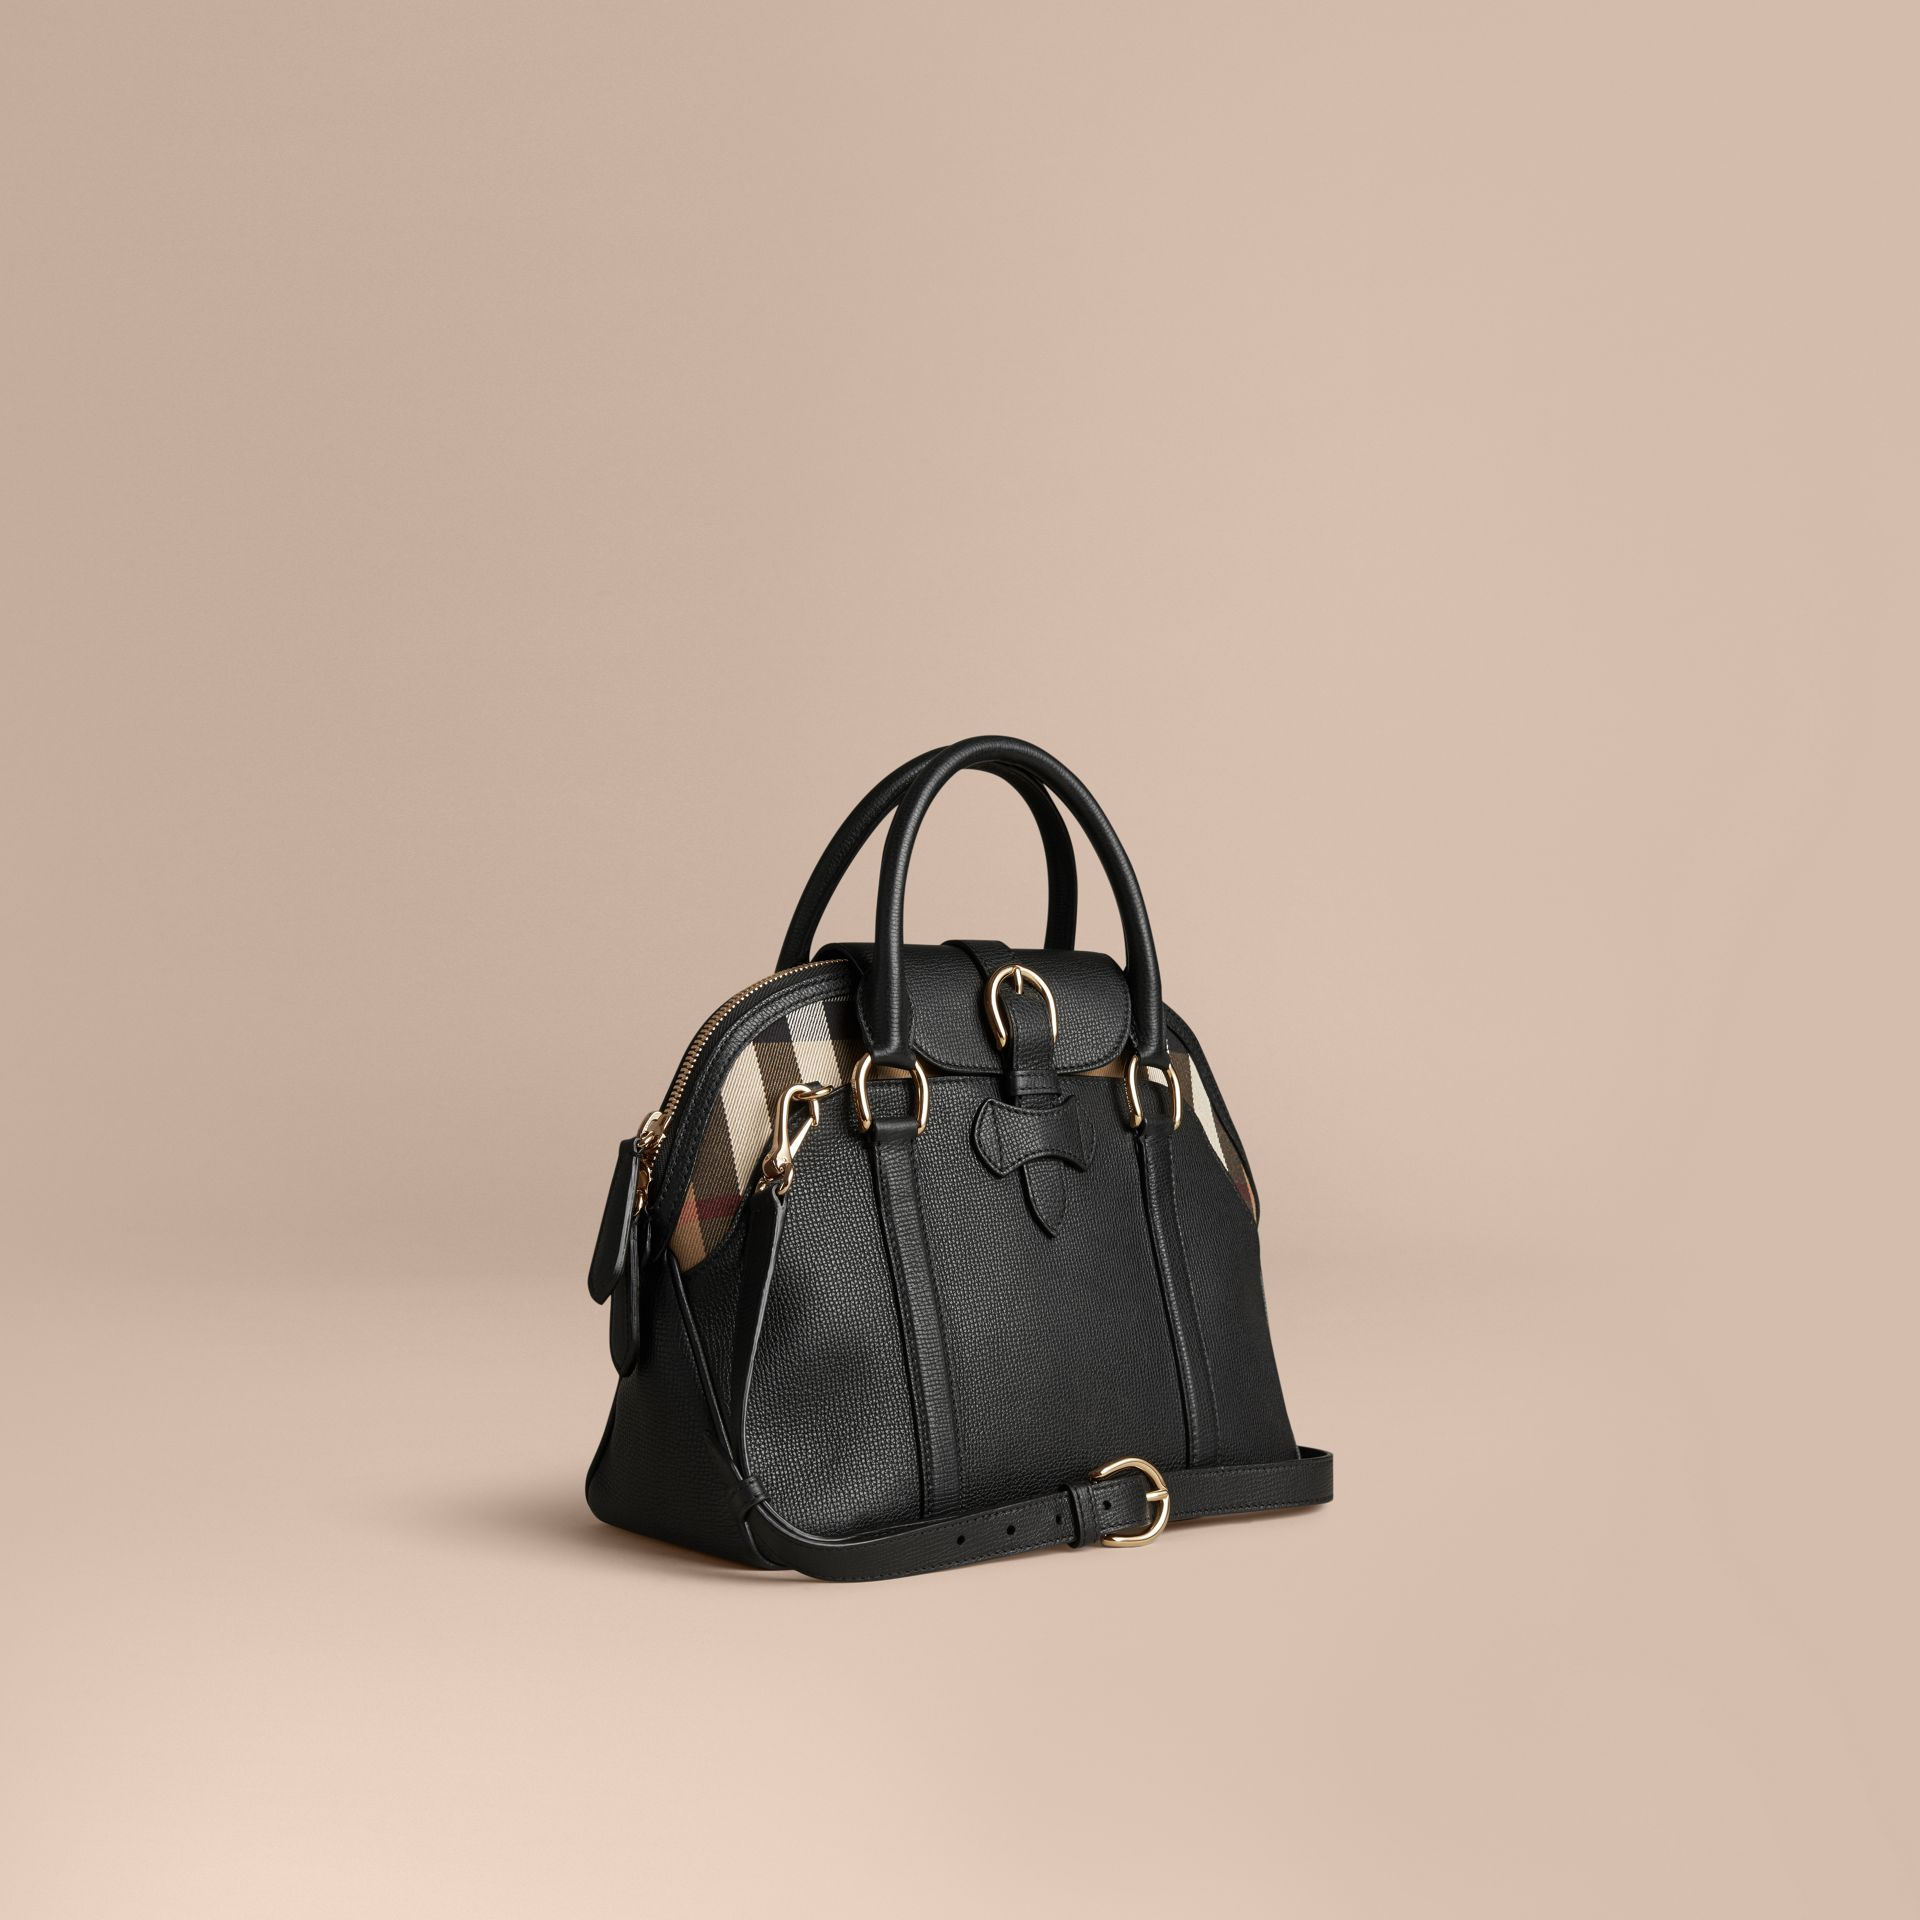 Noir Sac bowling medium en cuir et coton House check Noir - photo de la galerie 1